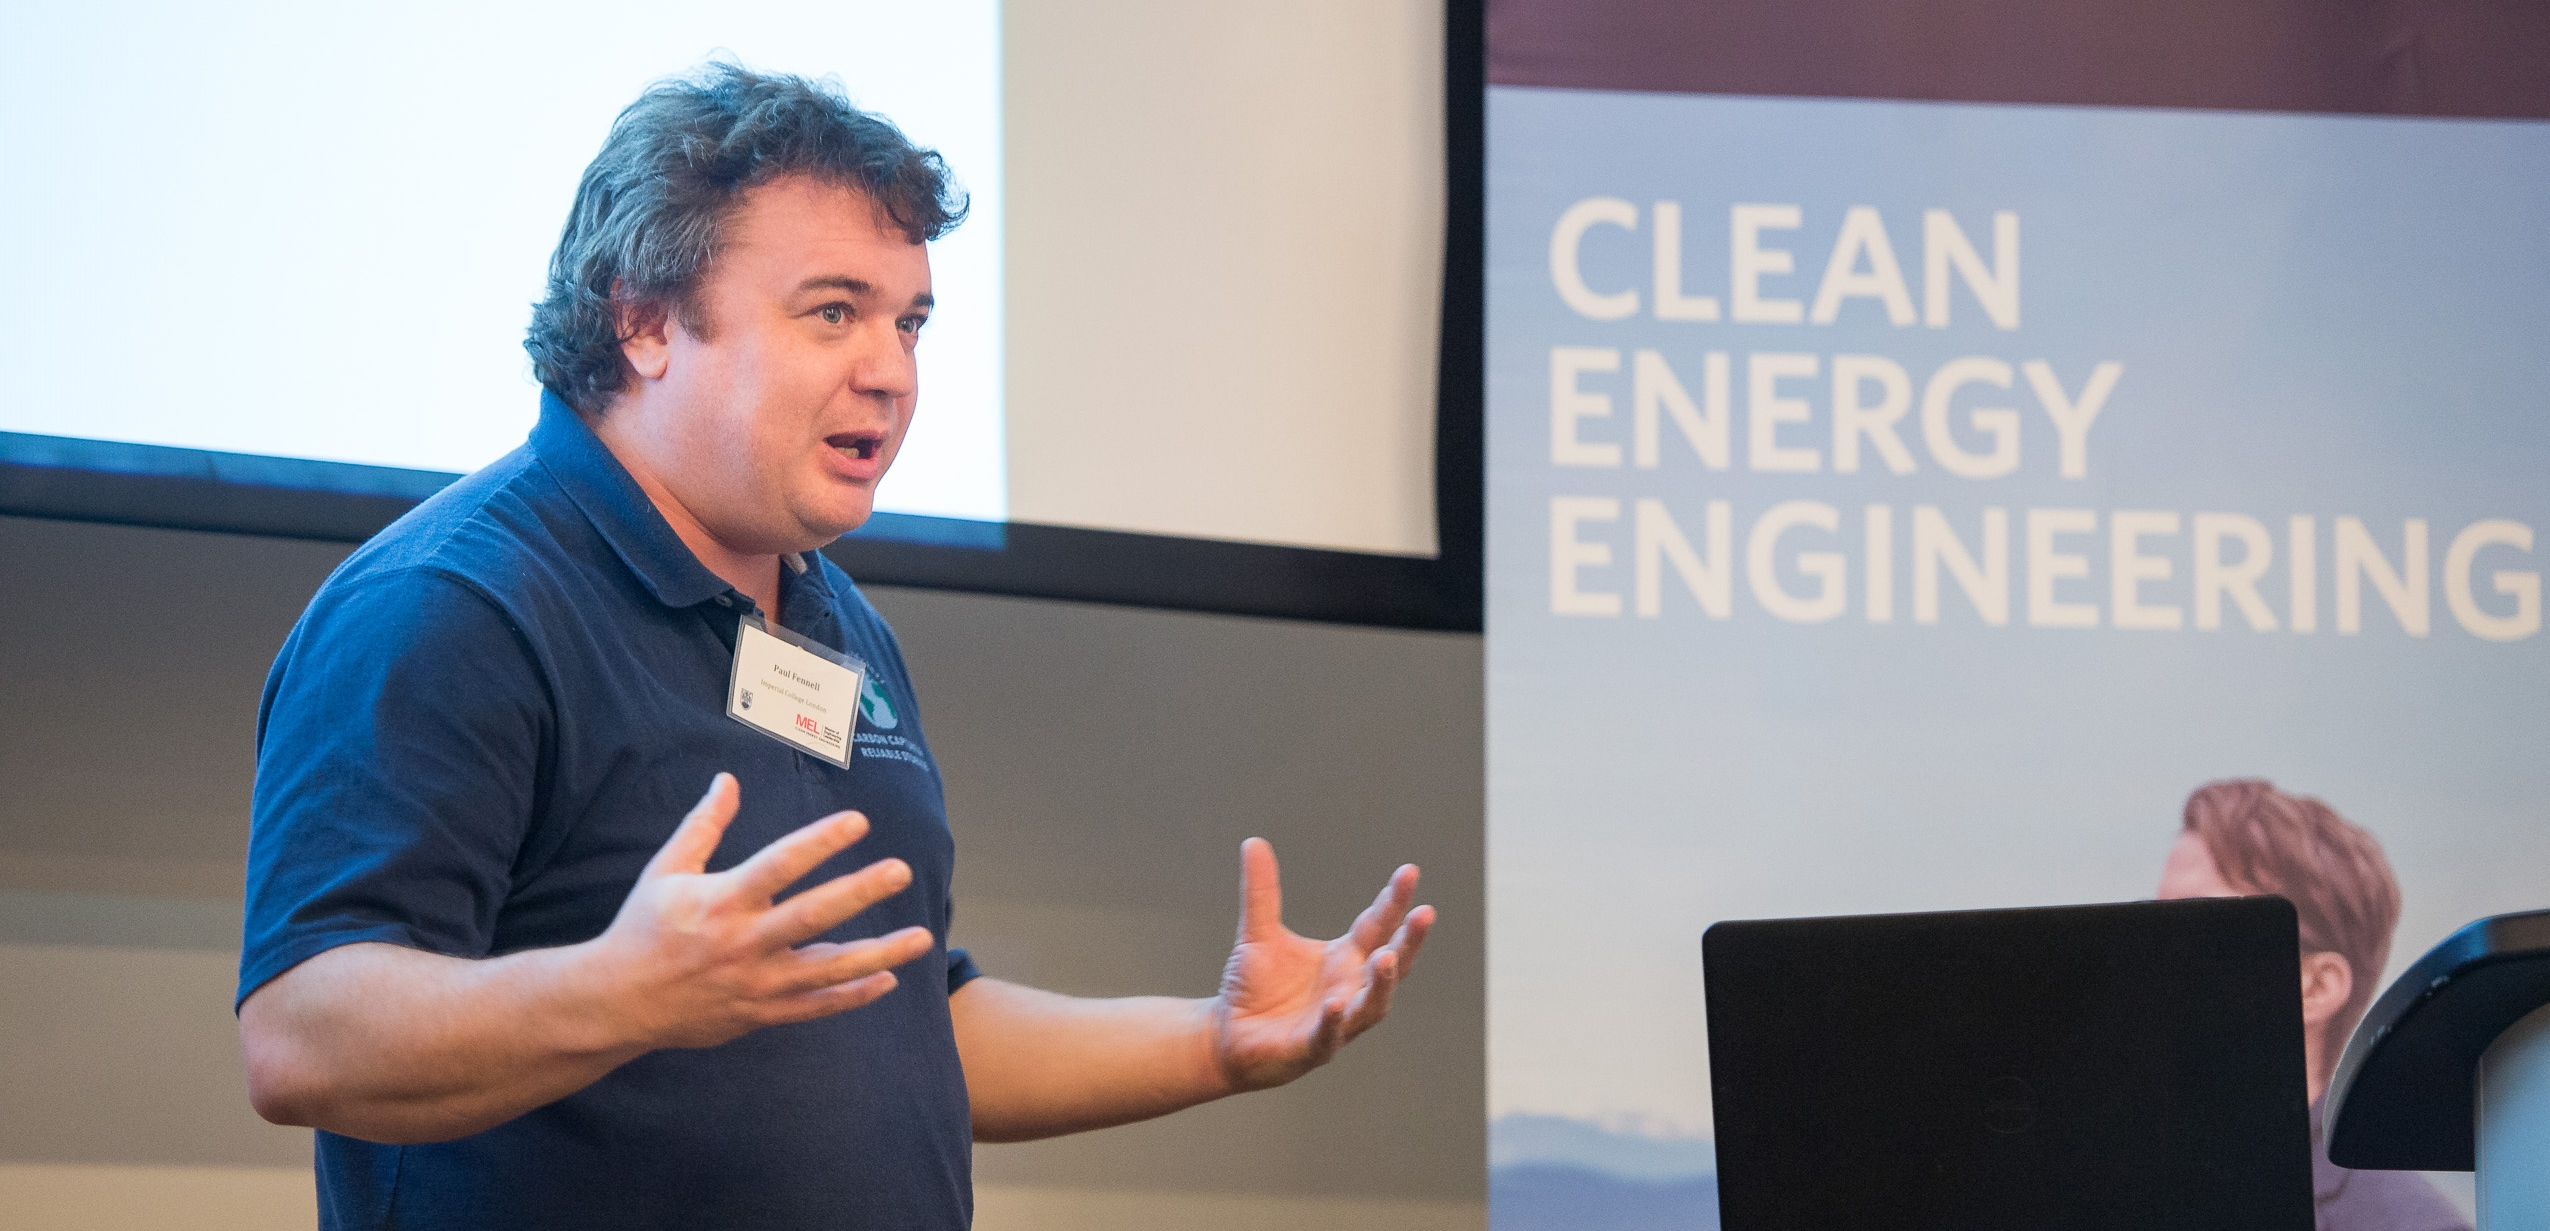 MEL in Clean Energy Engineering Capstone Showcase Event December 2017_Dr. Paul Fennell, Professor of Clean Energy at the Imperial College in London